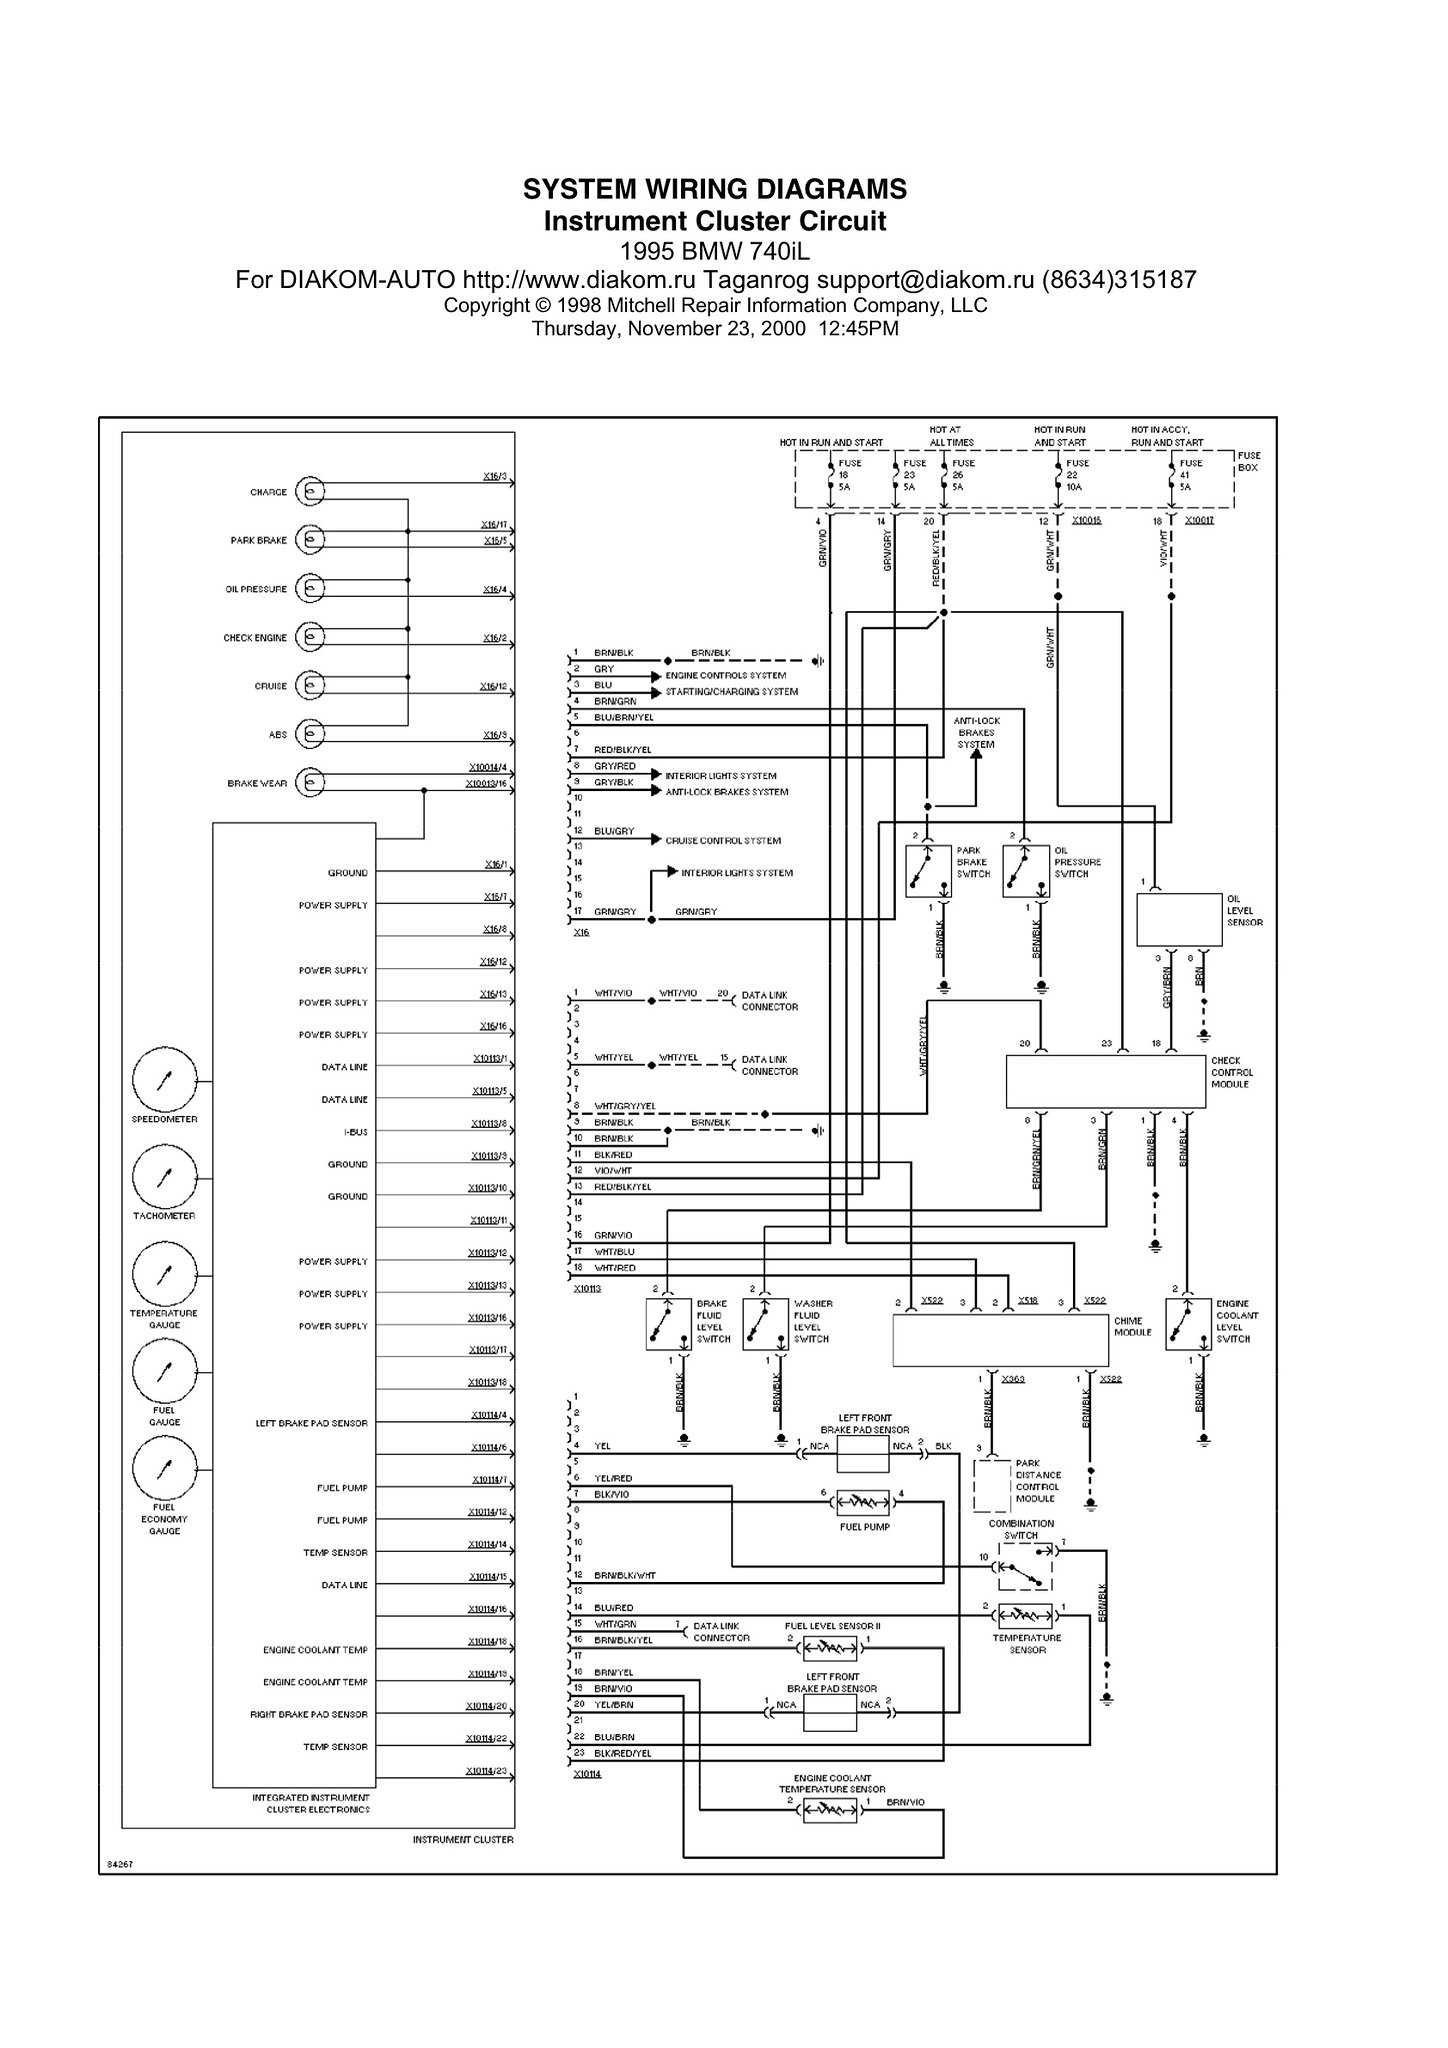 7703585142_dbc4ceb414_k bmw e39 wiring diagrams 1998 740i heated seat wiring diagram bmw e39 wiring diagram at readyjetset.co